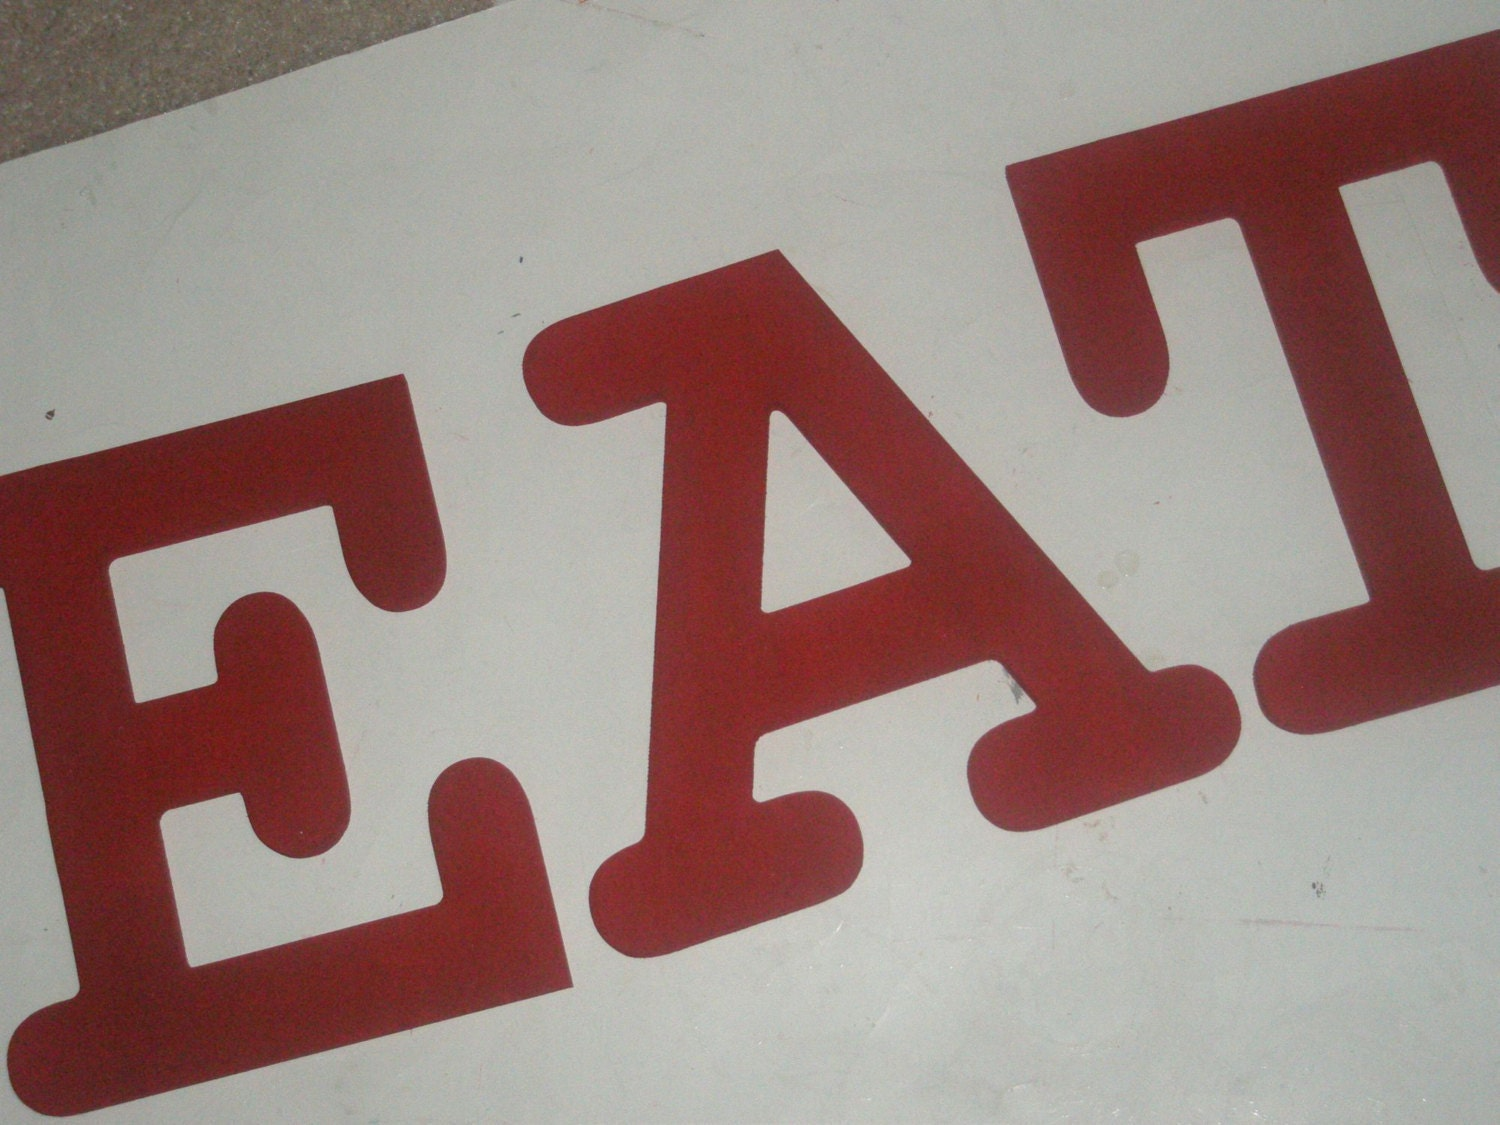 Eat kitchen decor hand painted wooden wall letters red for Kitchen letters decoration